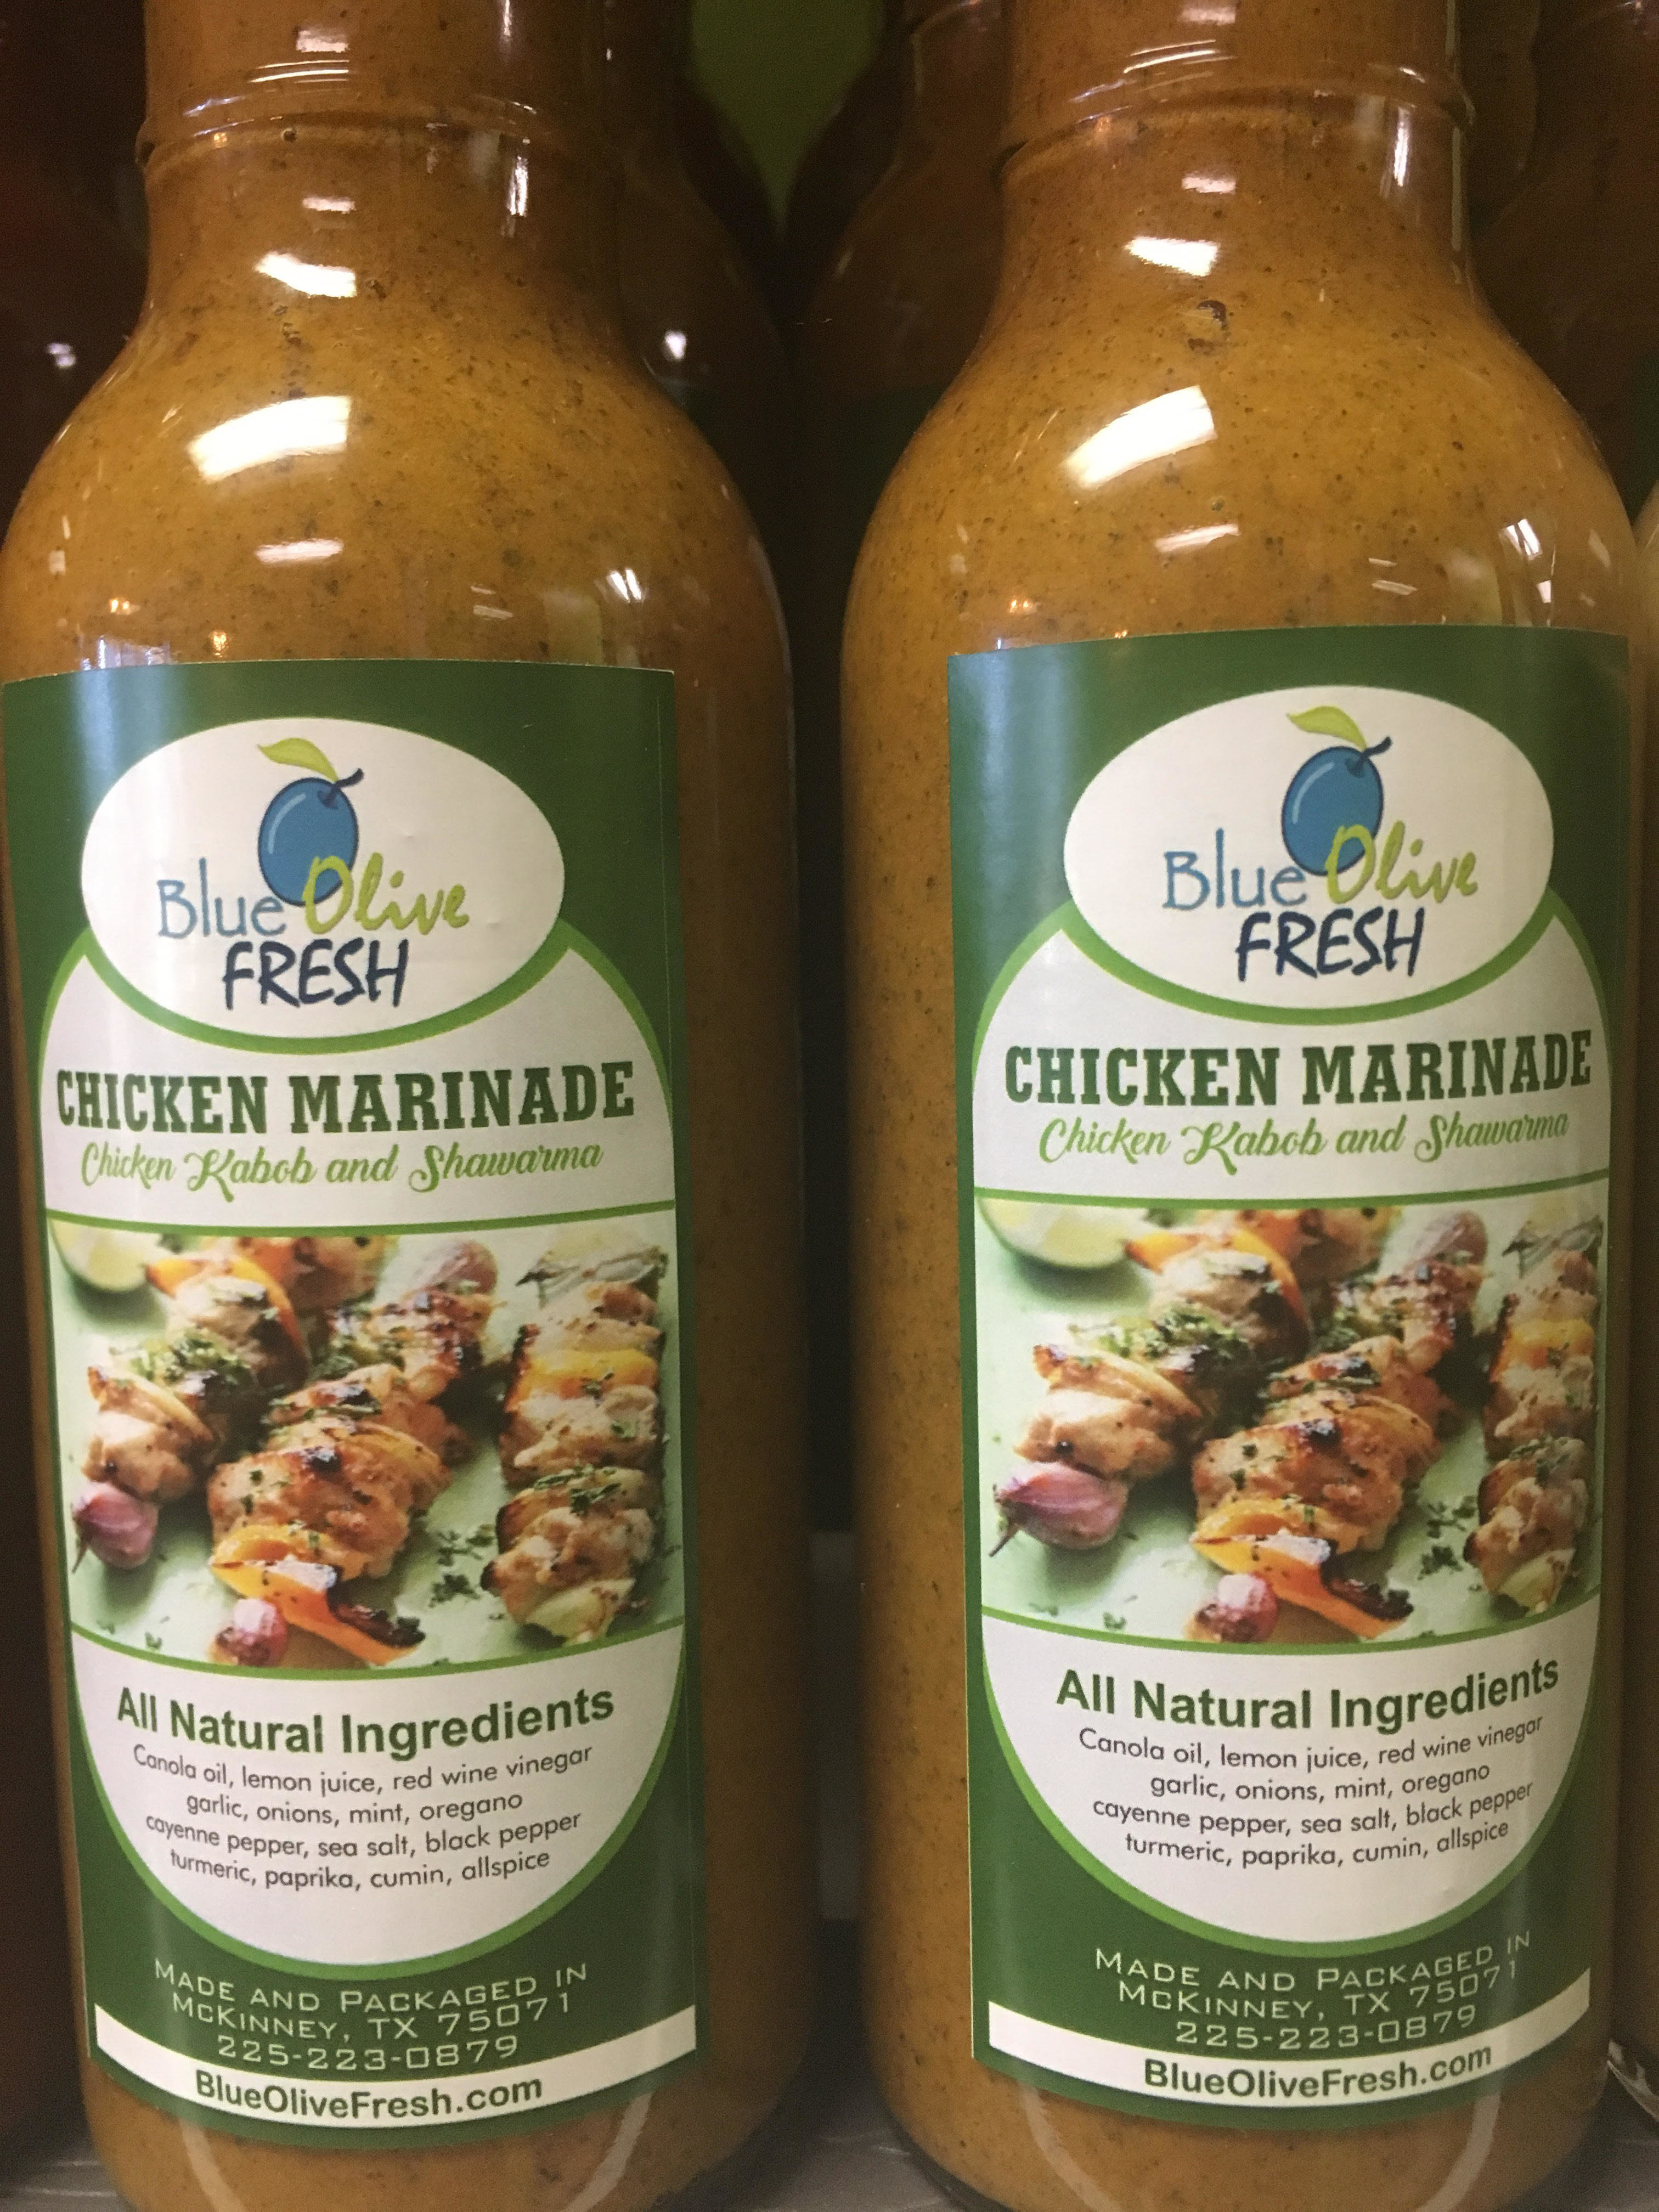 Chicken Marinade - Chicken Kabob & Shawarma 00016